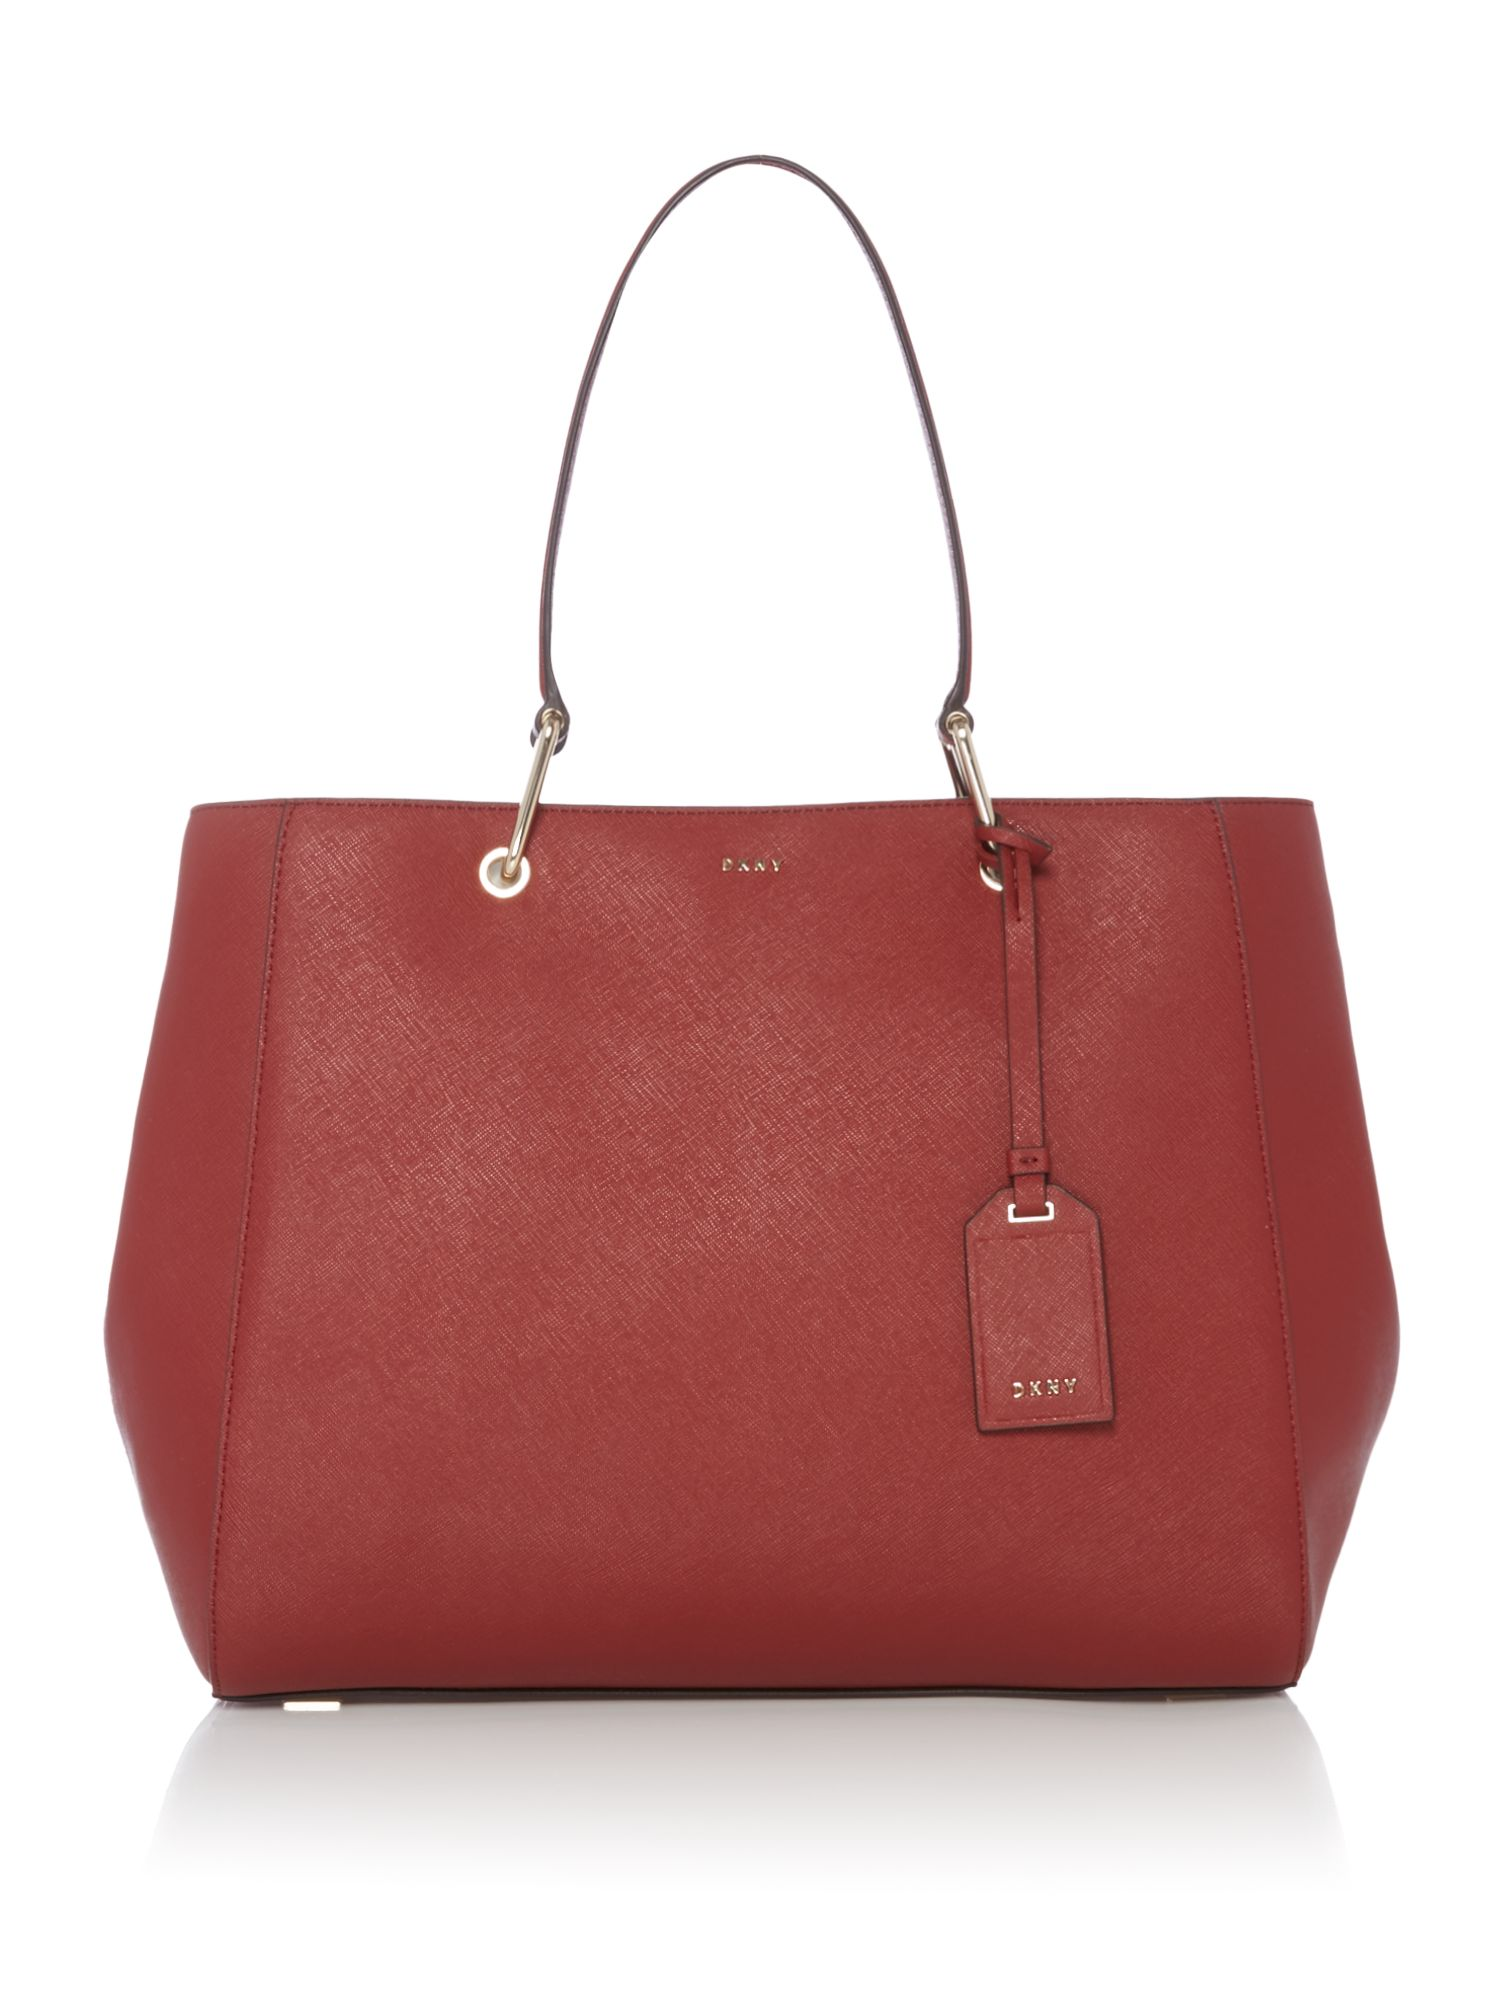 Dkny saffiano tote bag house of fraser for Housse of fraser